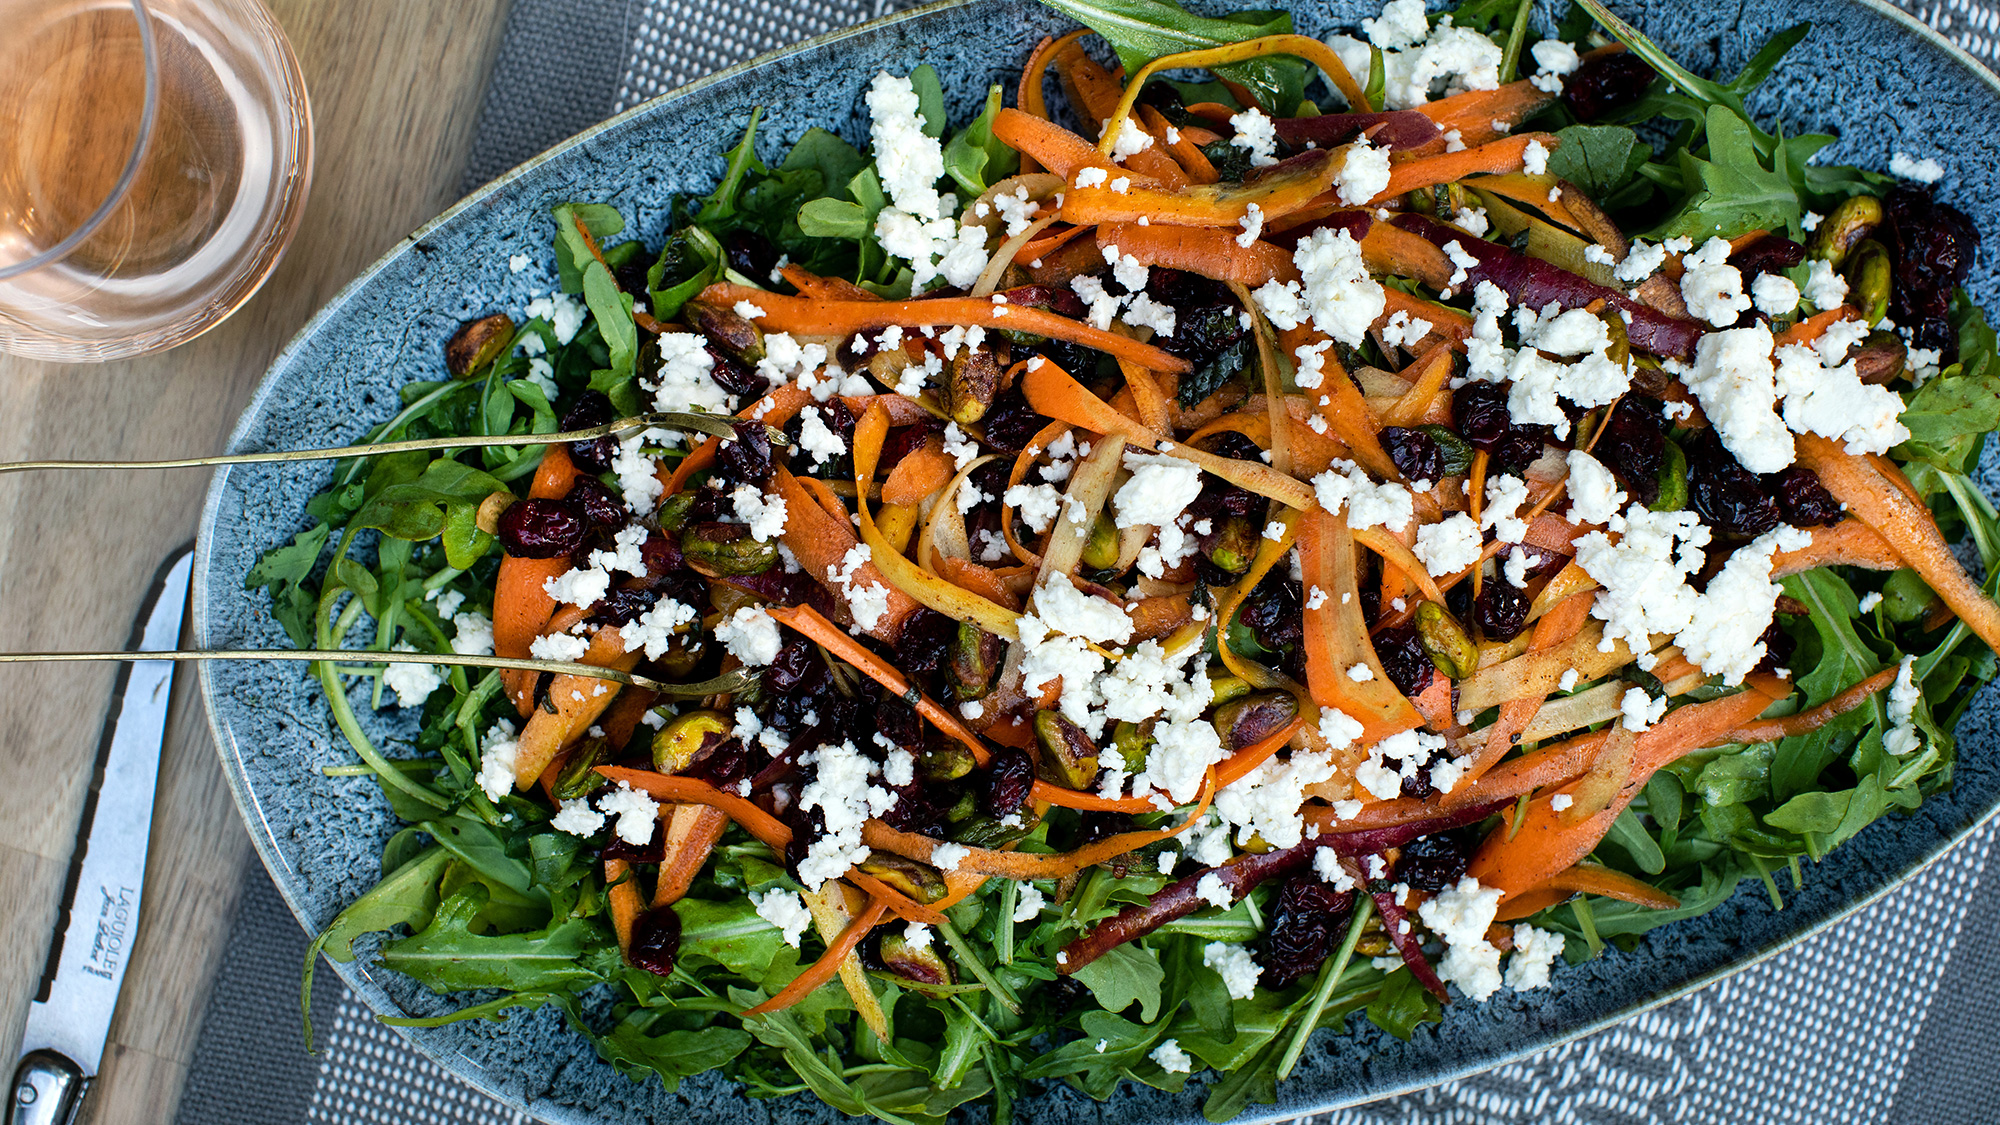 McCormick Shaved Carrot Salad with Pomegranate Harissa Dressing